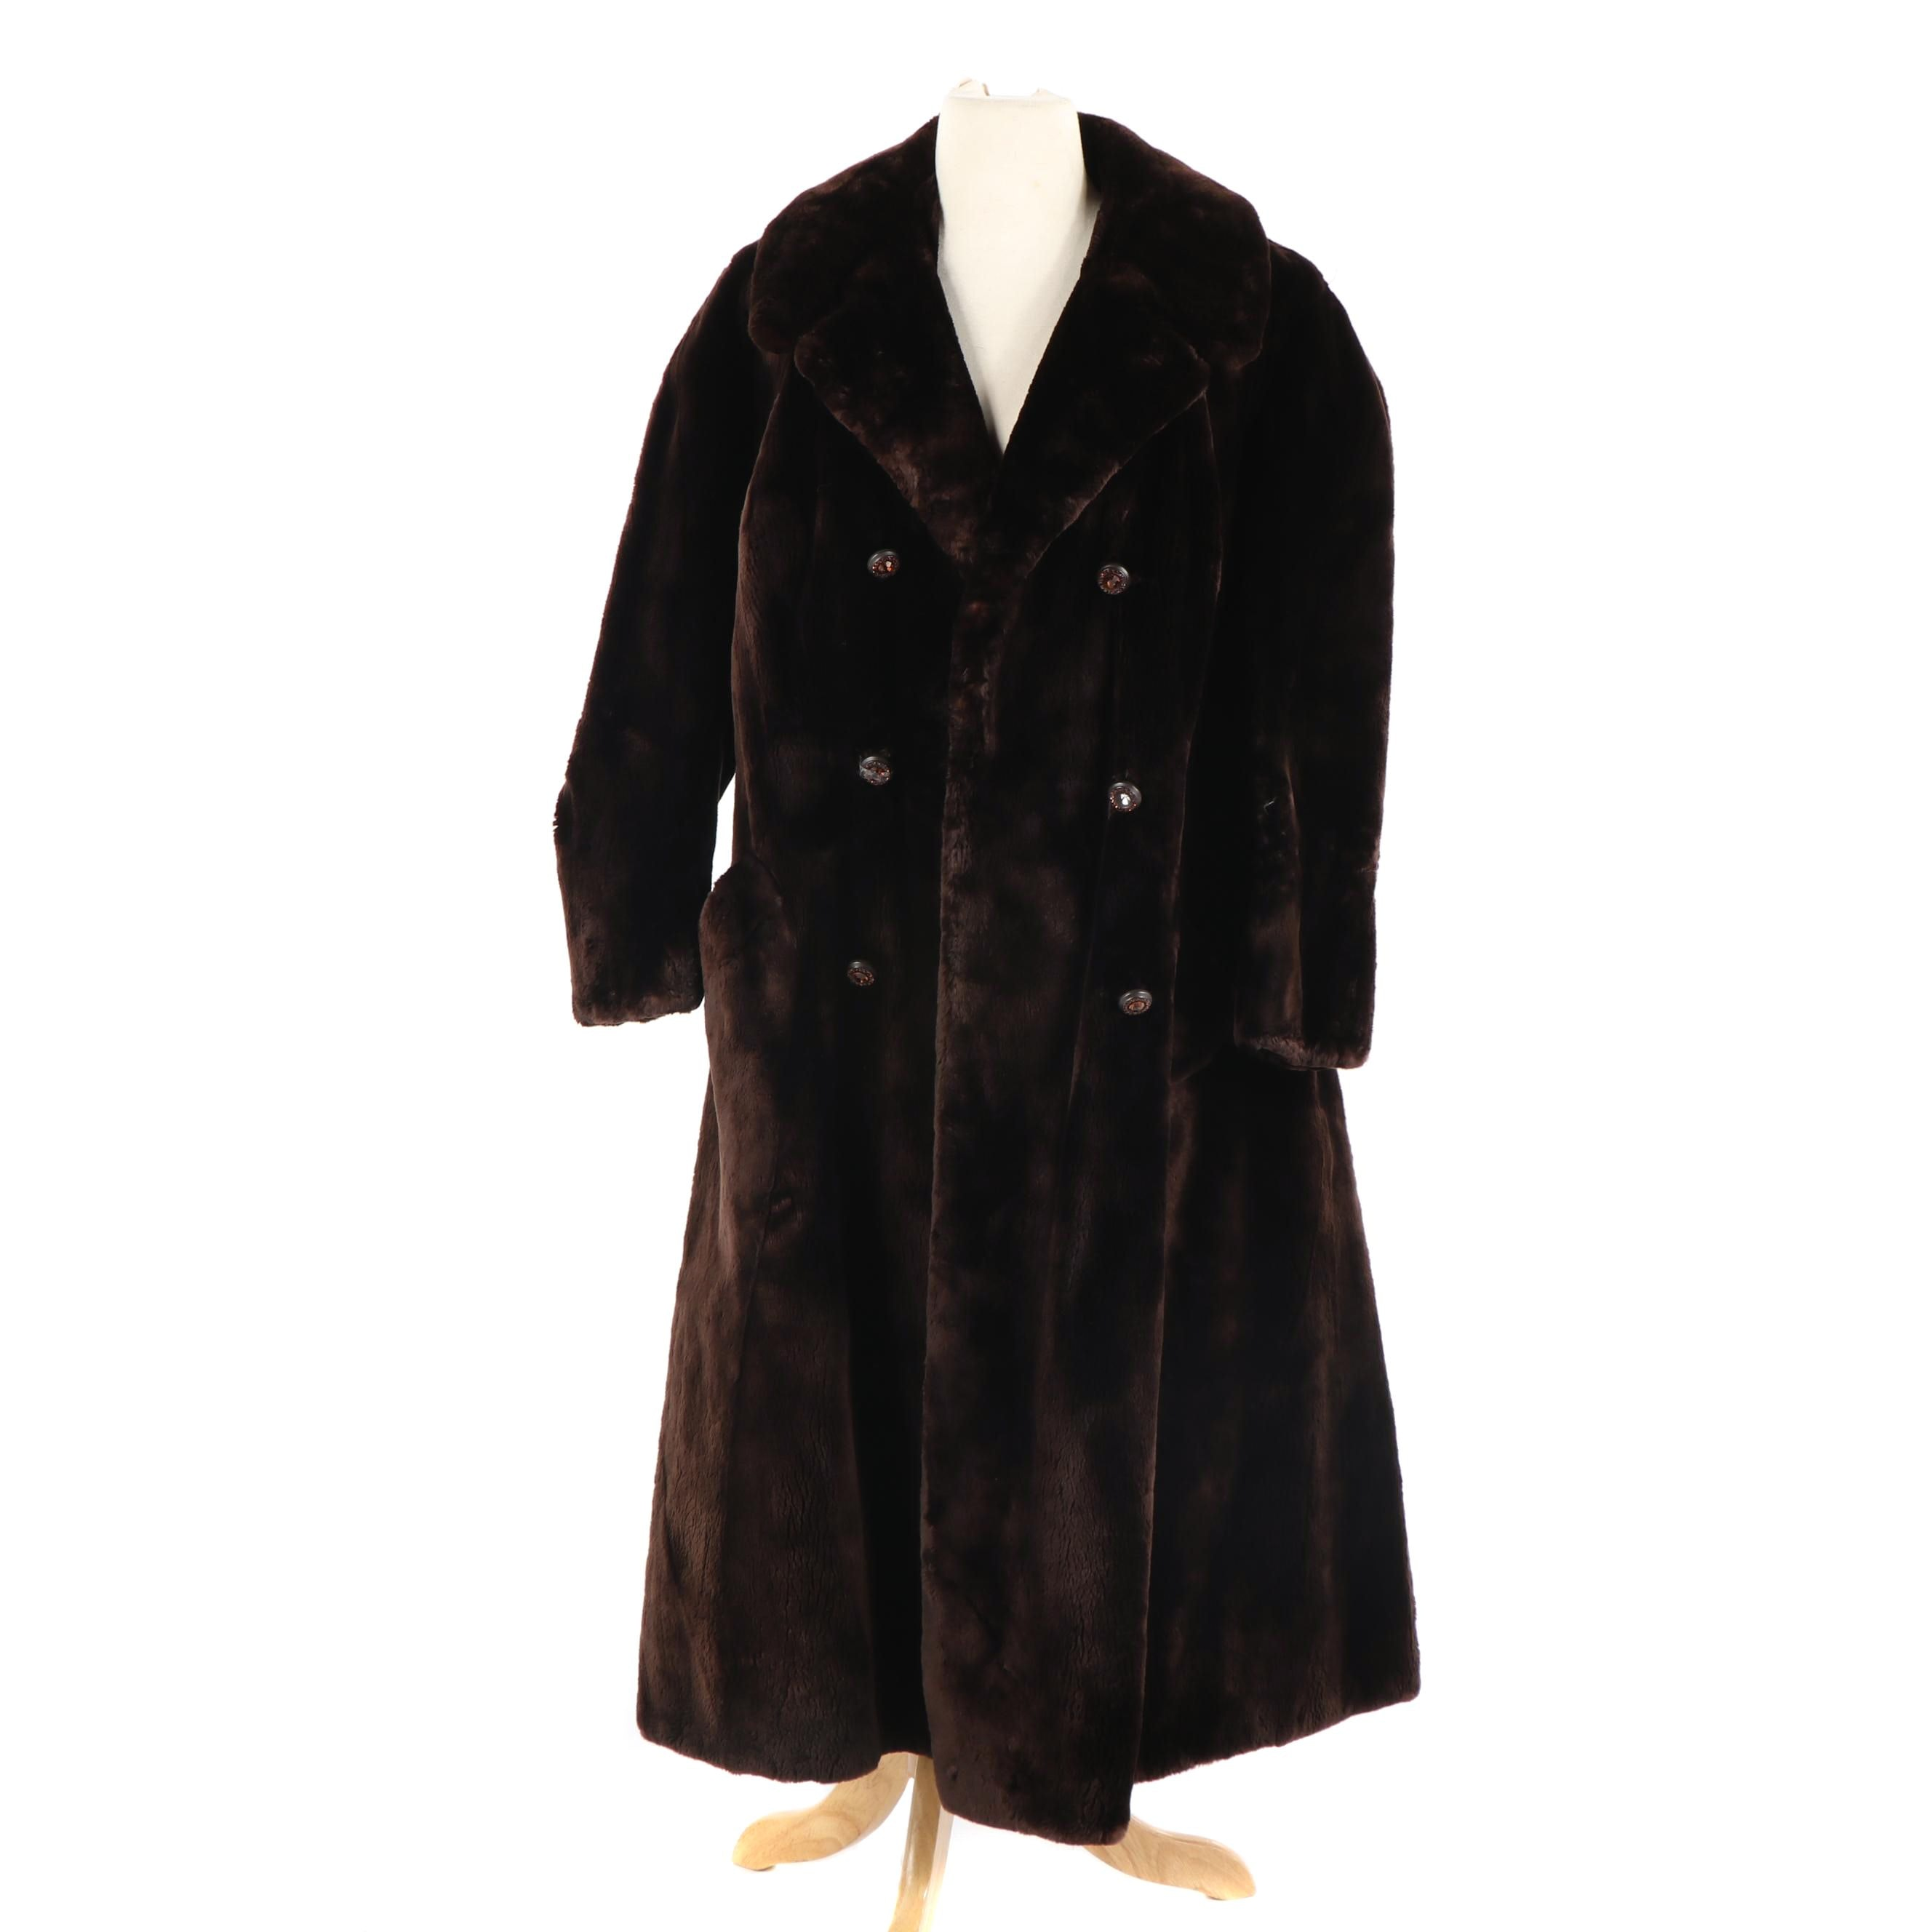 Vintage Alfreda Fur by Goldstrom Sheared Beaver Double-Breasted Fur Coat